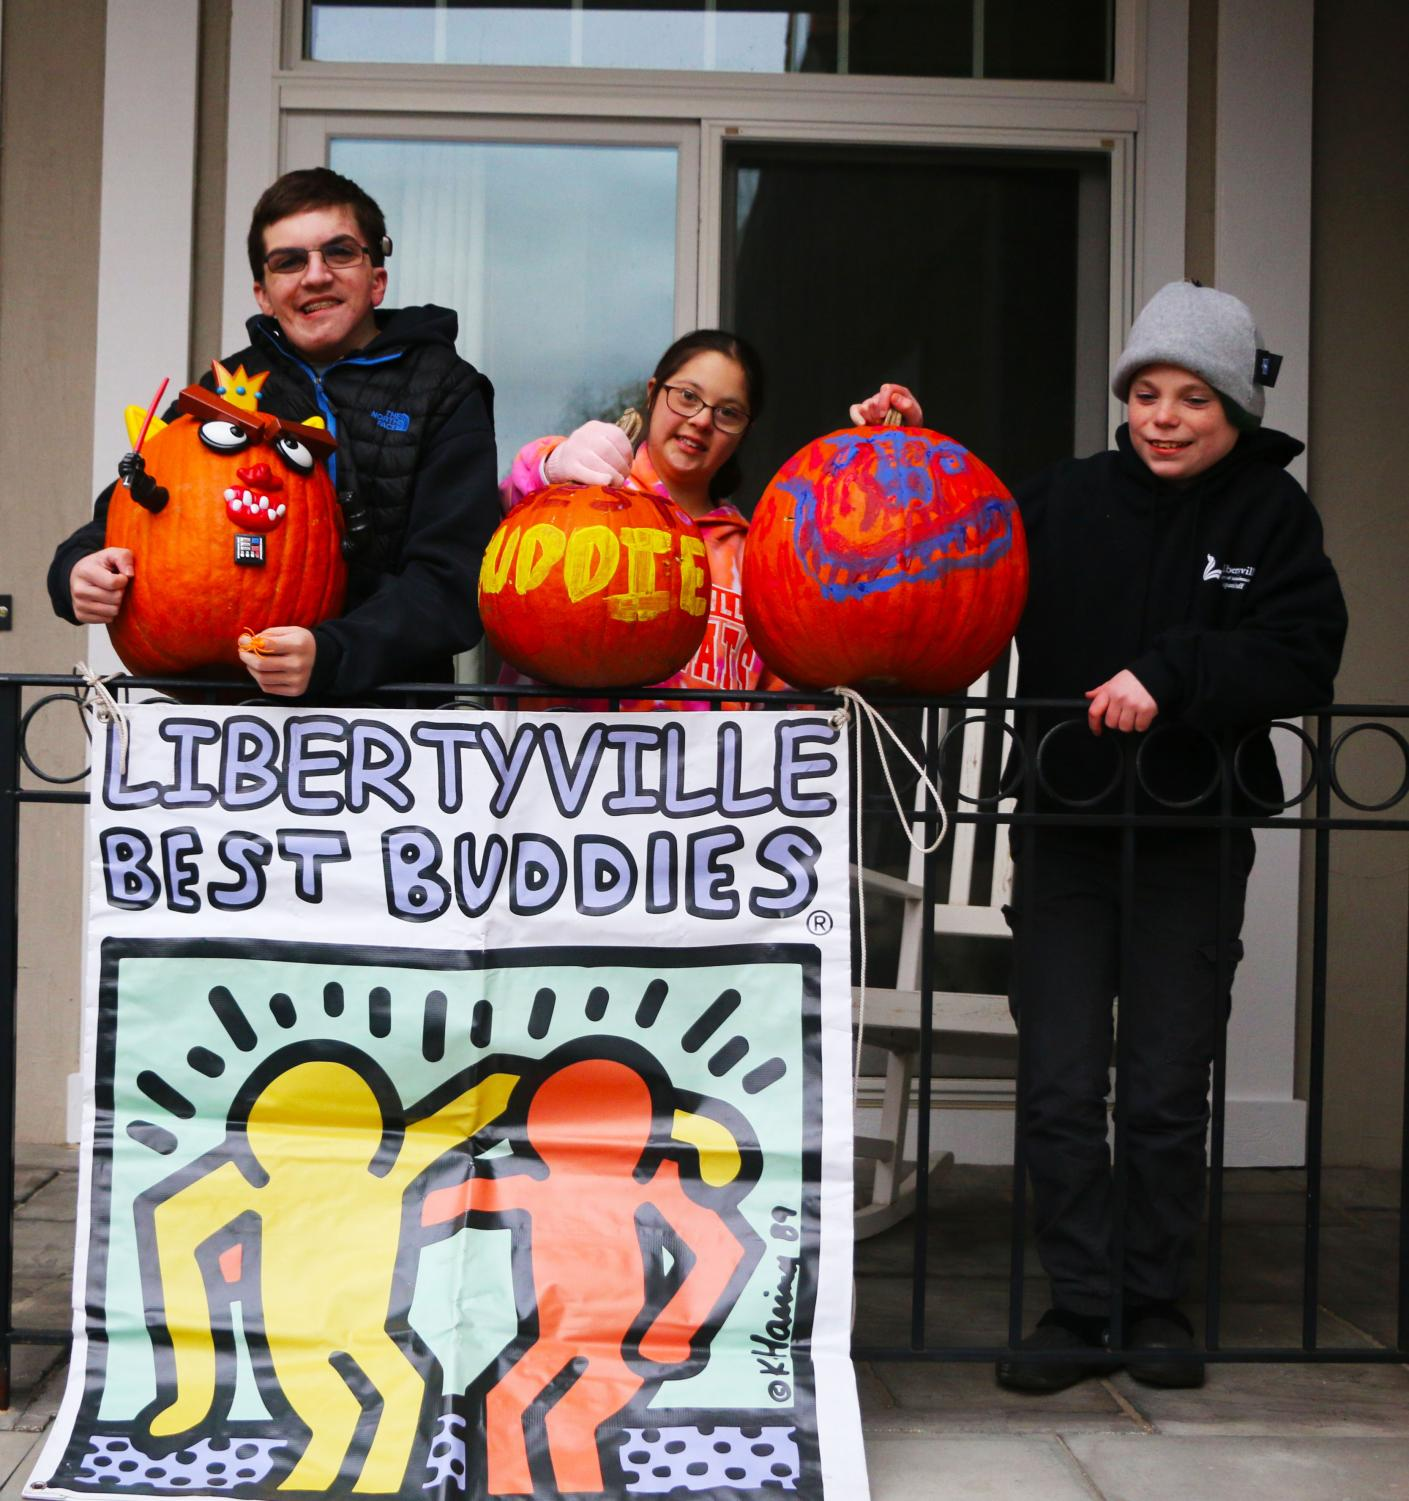 Peter Dankelson, Alexa Donato and Chase Miller attended the Best Buddies Halloween party and painted festive pumpkins on Oct. 28.